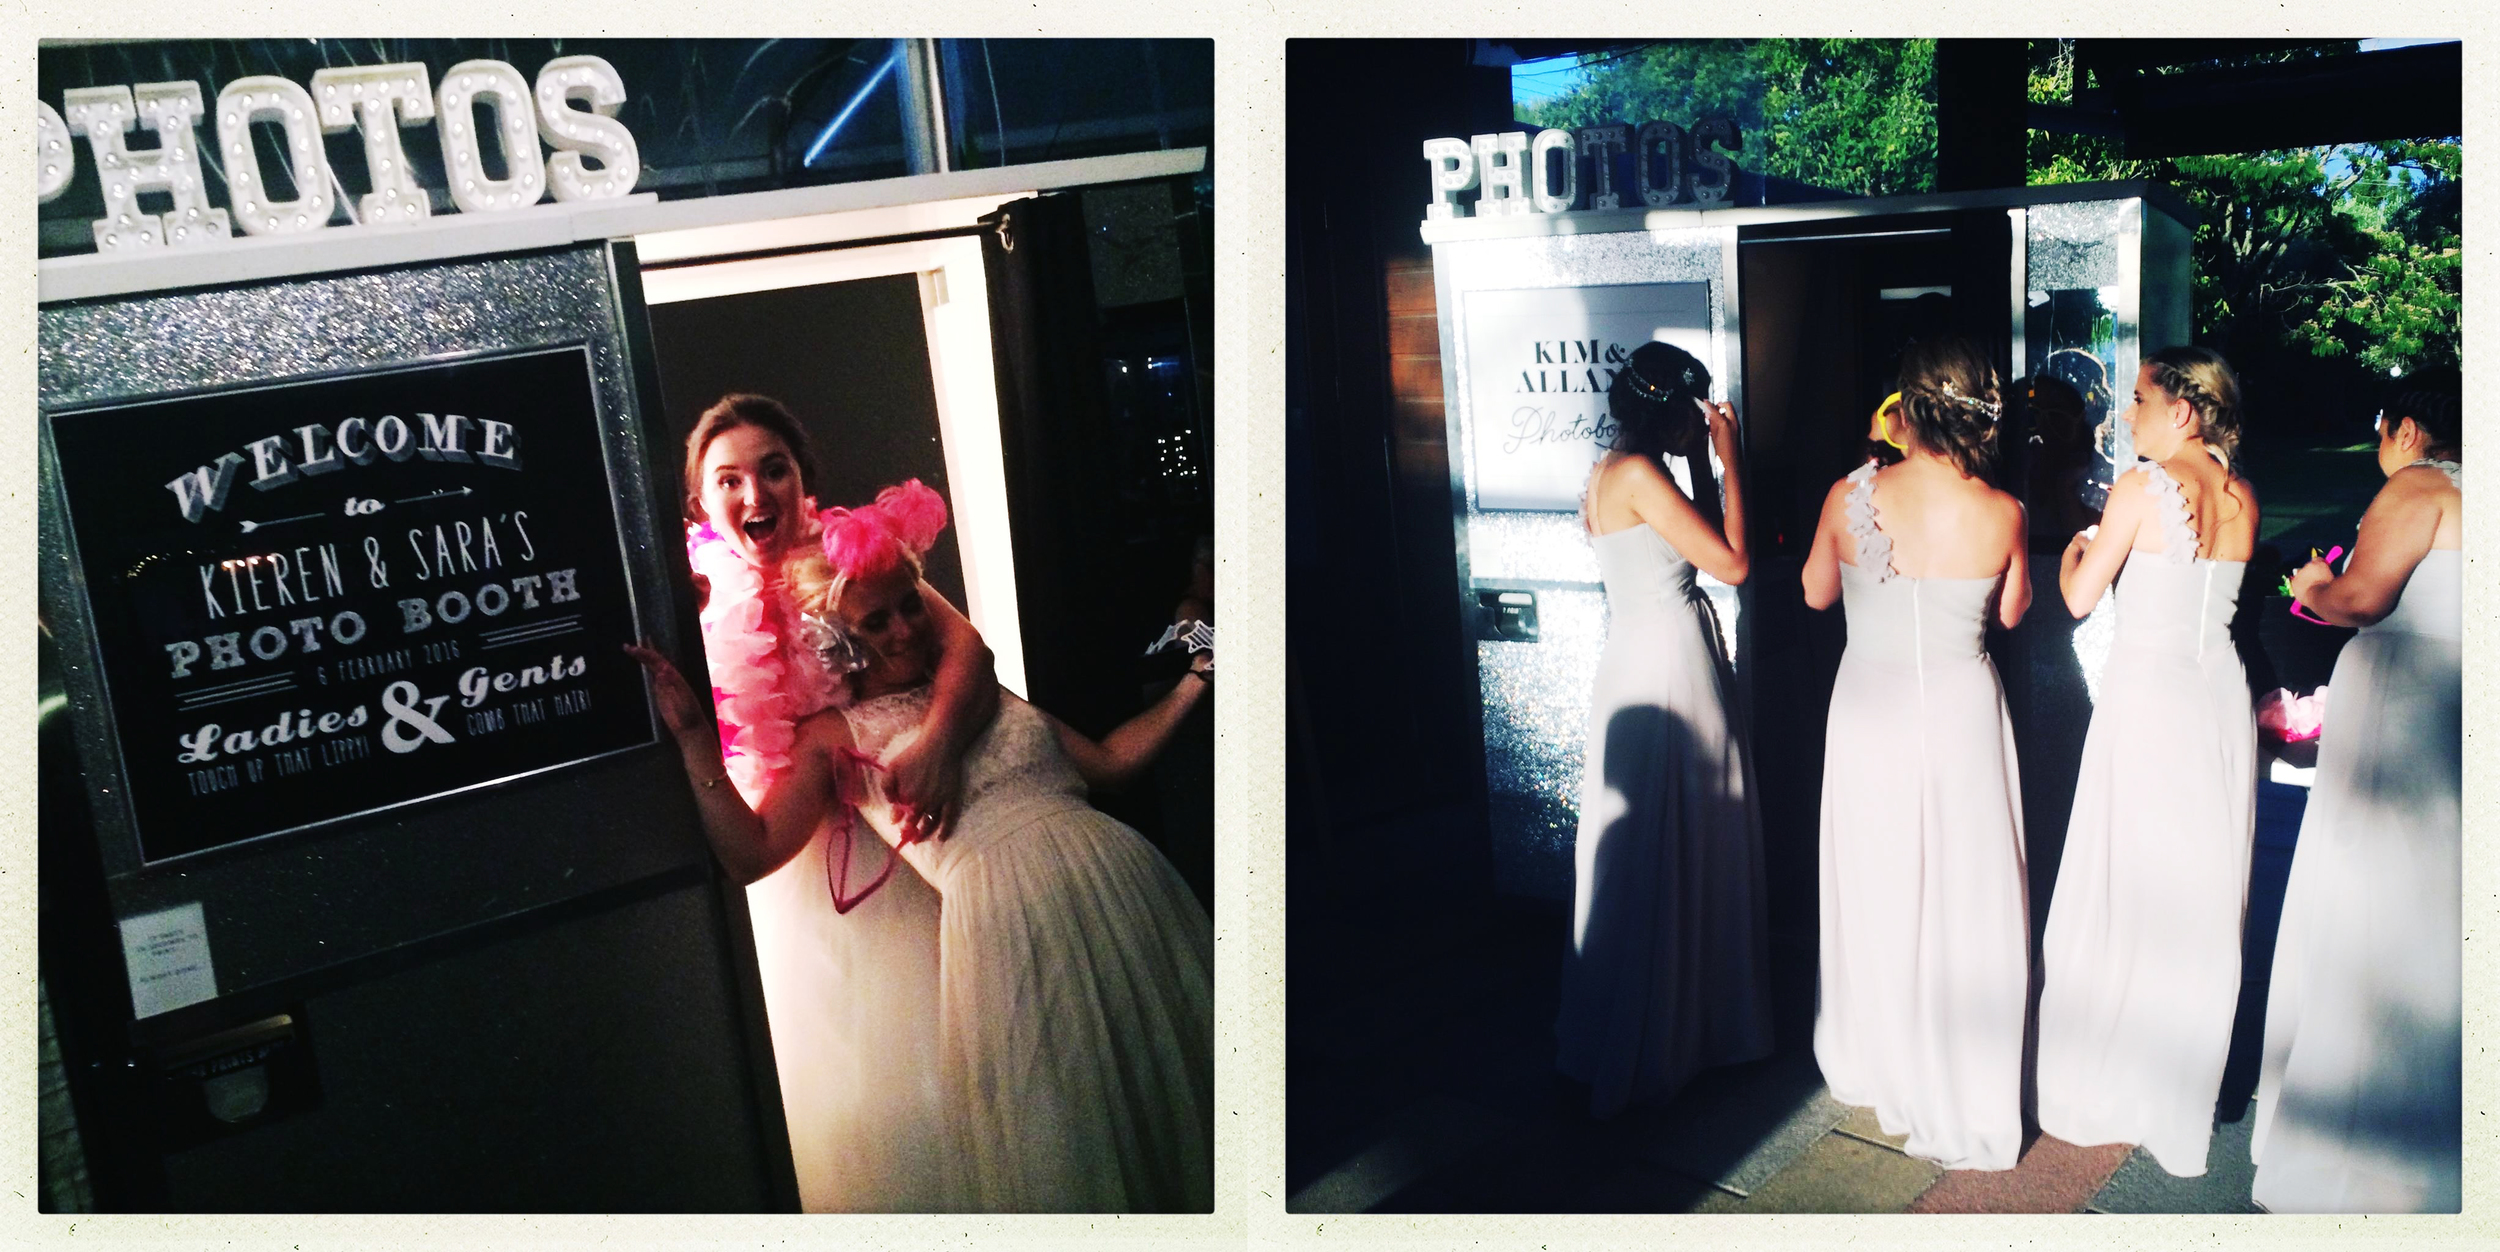 GIVE YOUR GUESTS a photo booth challenge | PHOTO CREDIT:  Photoautomatica (  www.photoautomatica.co.nz  )  Challenge:  Guest with two bridesmaids